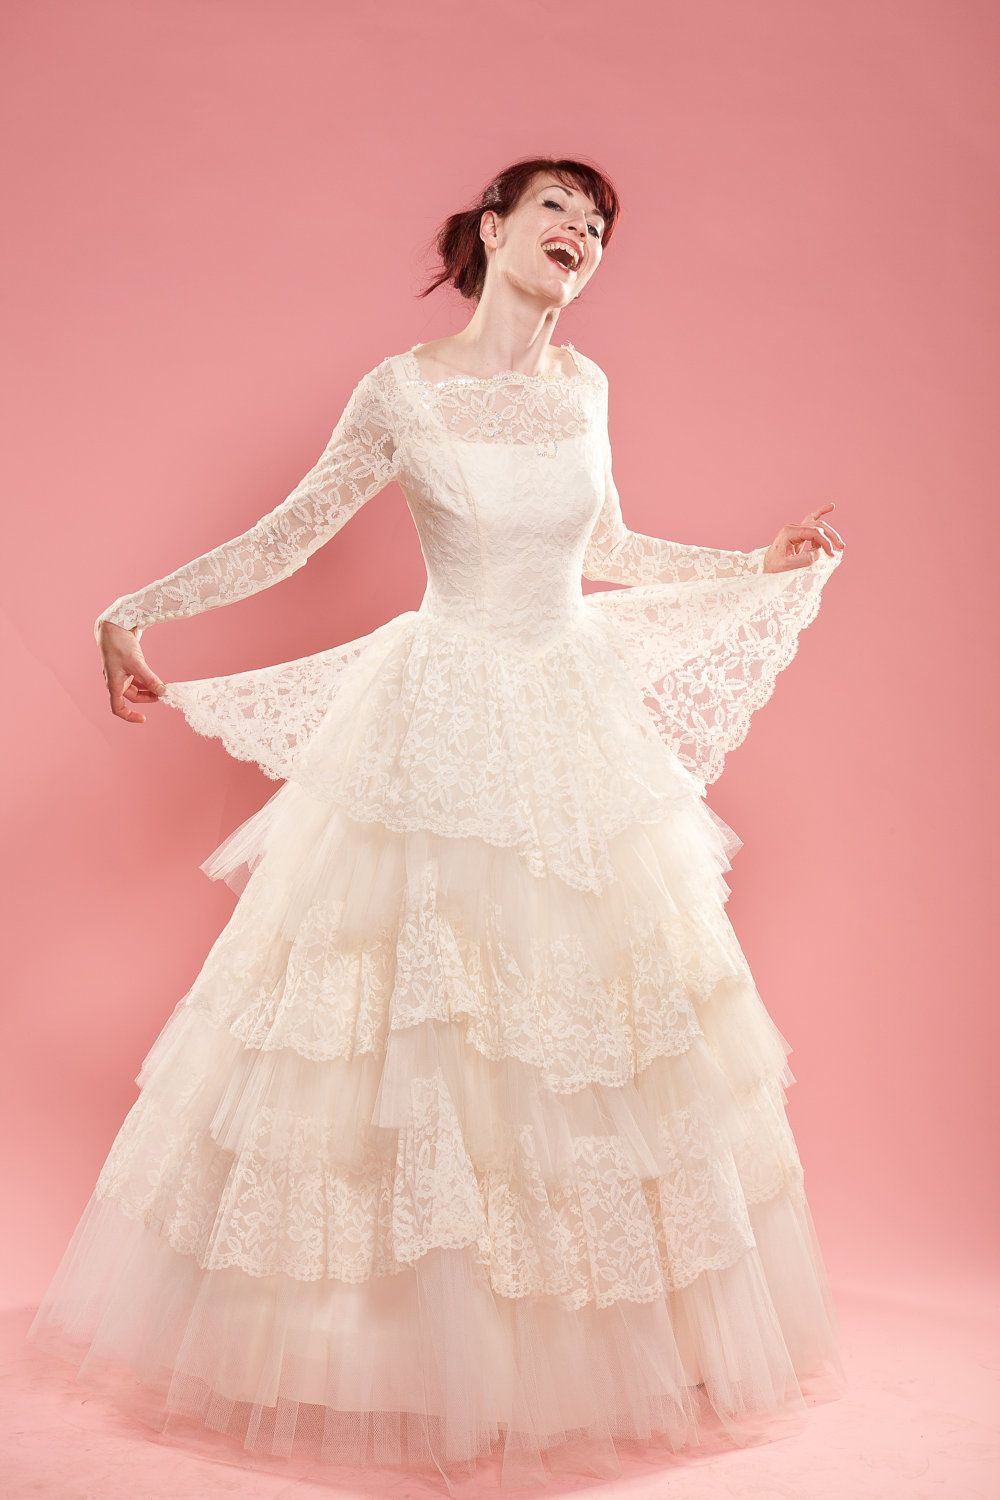 1950s lace dress  RESERVED Vintage s Lace Wedding Dress Cupcake Tulle Ruffles